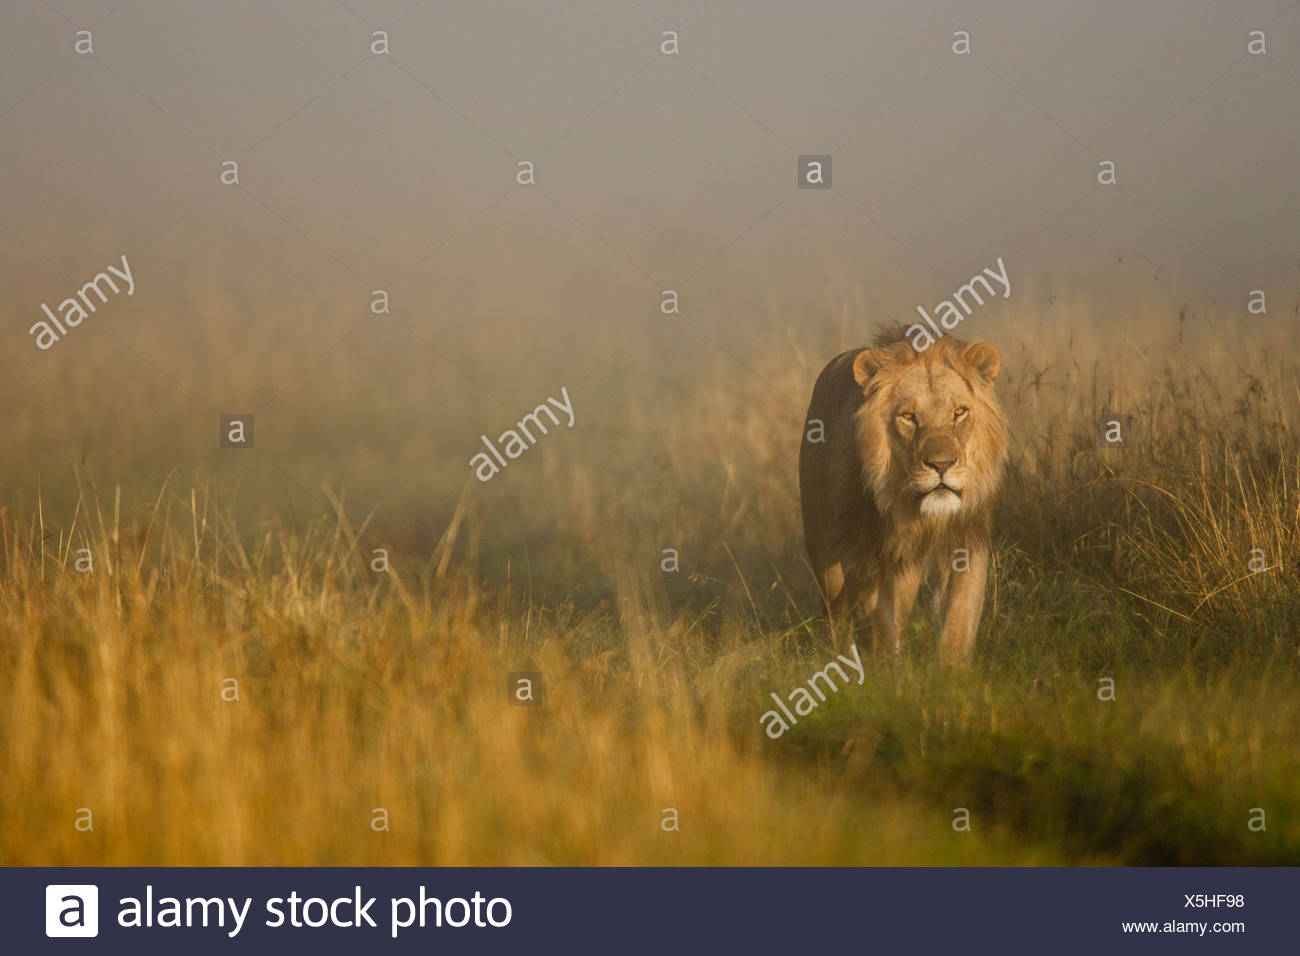 Lion emerging from the fog, Masai Mara, Kenya - Stock Image